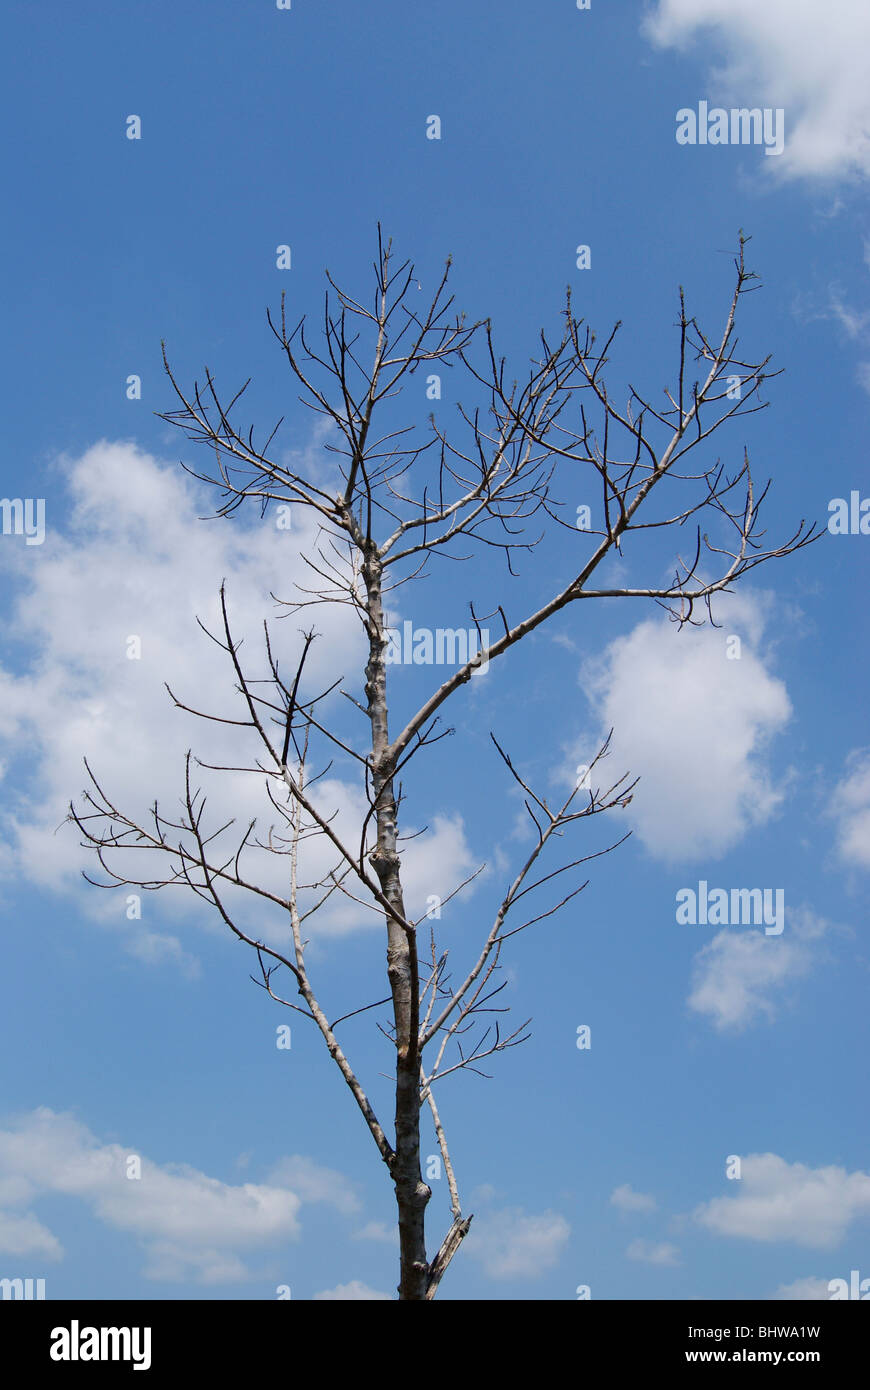 Leafless Tree in cloudy sky background.Scenic forest tree View from Kerala,India - Stock Image